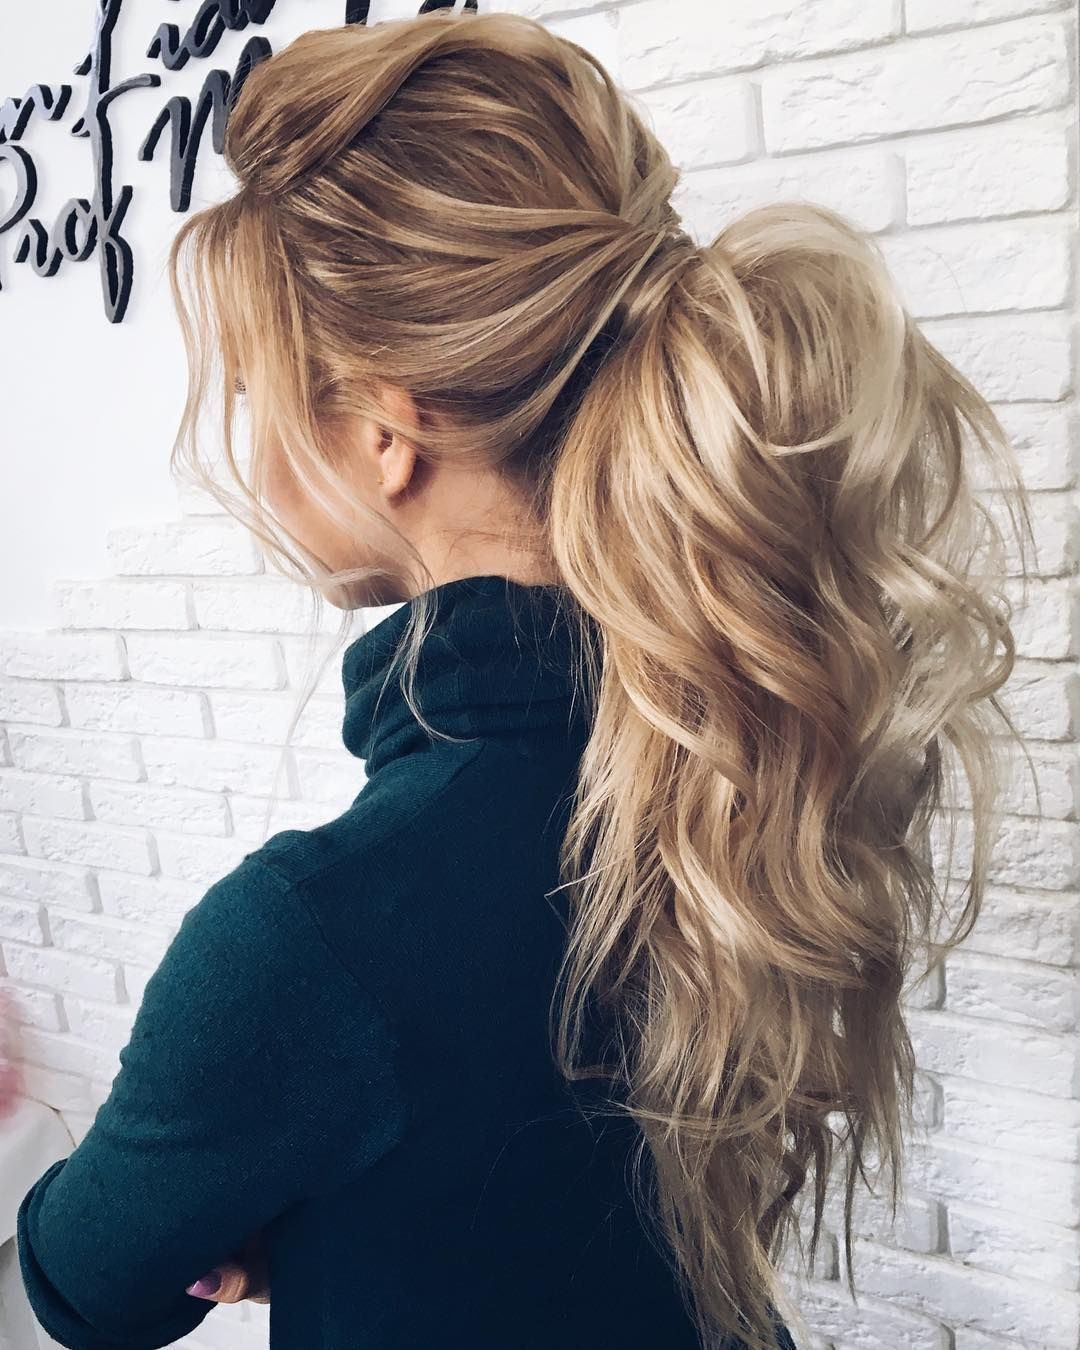 27 Gorgeous Wedding Hairstyles For Long Hair In 2019: Gorgeous Ponytail Hairstyle Ideas That Will Leave You In